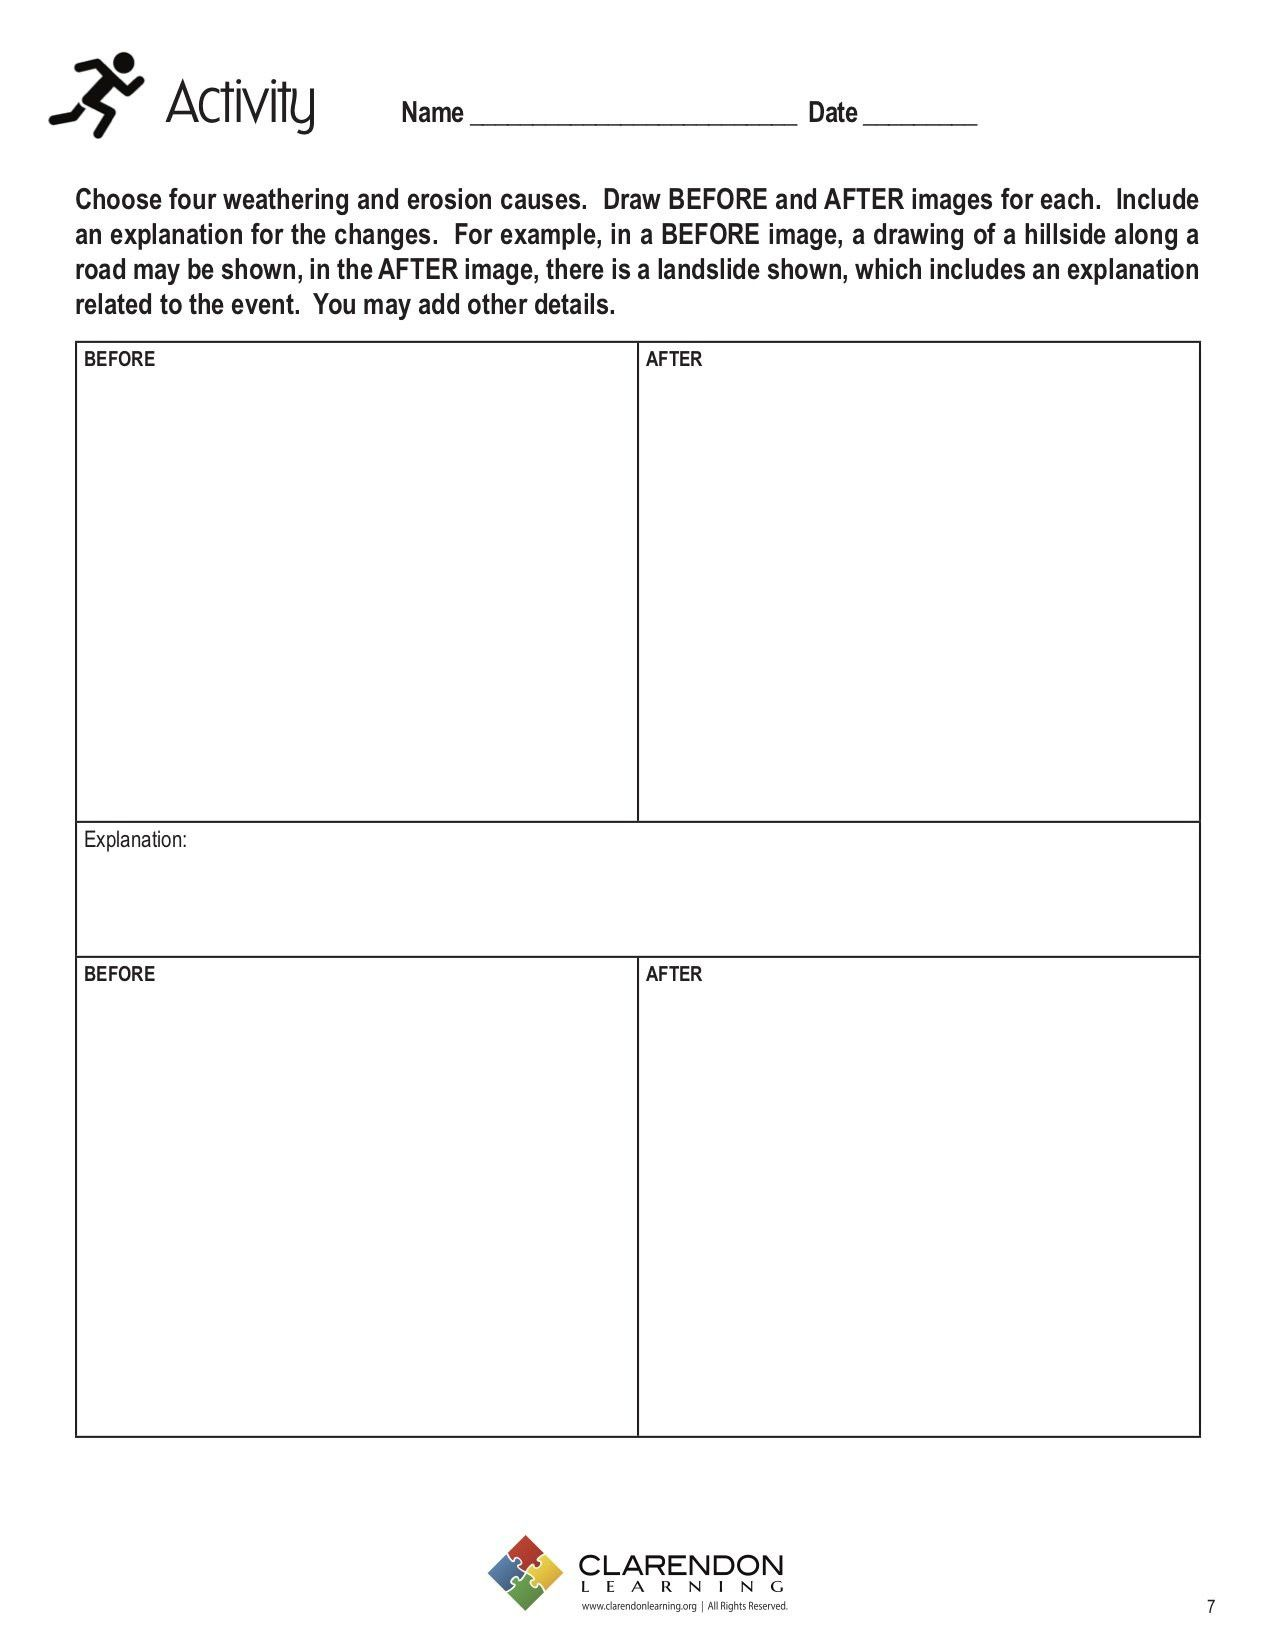 Weathering Erosion and Deposition Worksheet Weathering and